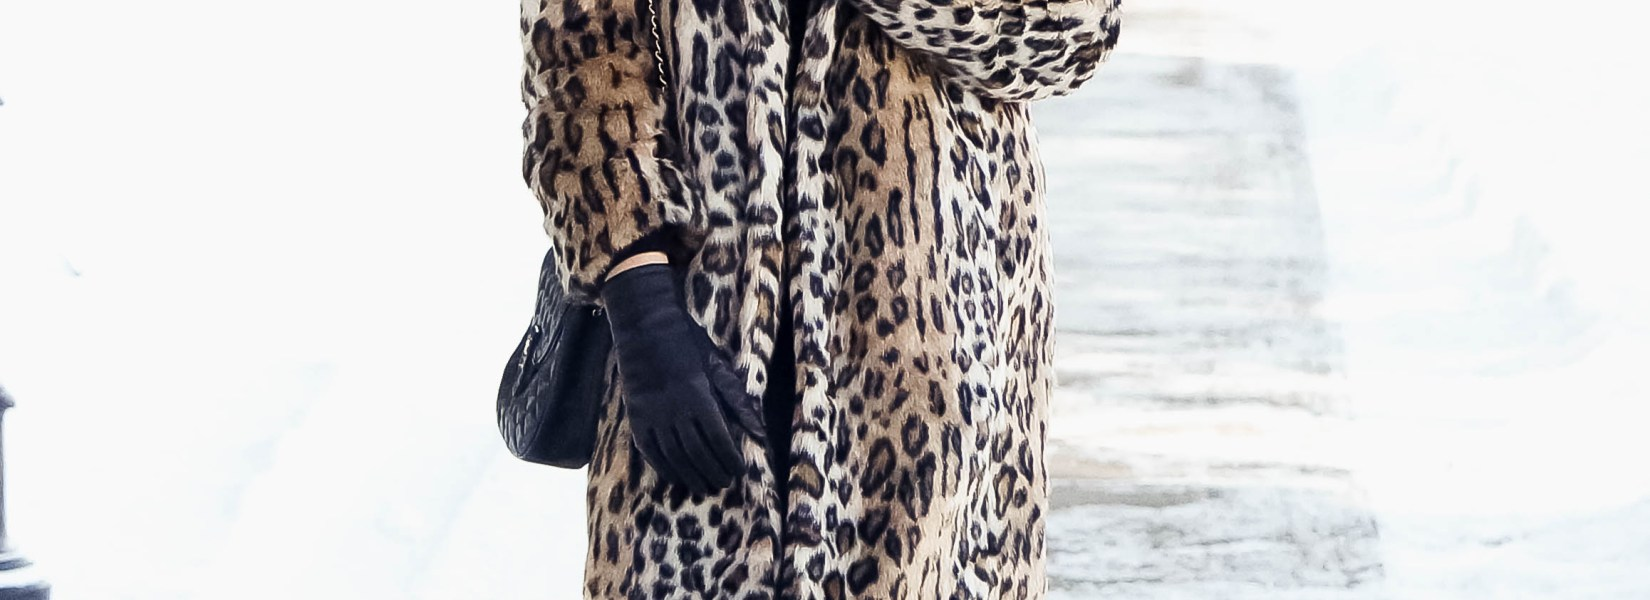 Statement Piece For Winter: Leopard Fur Coat